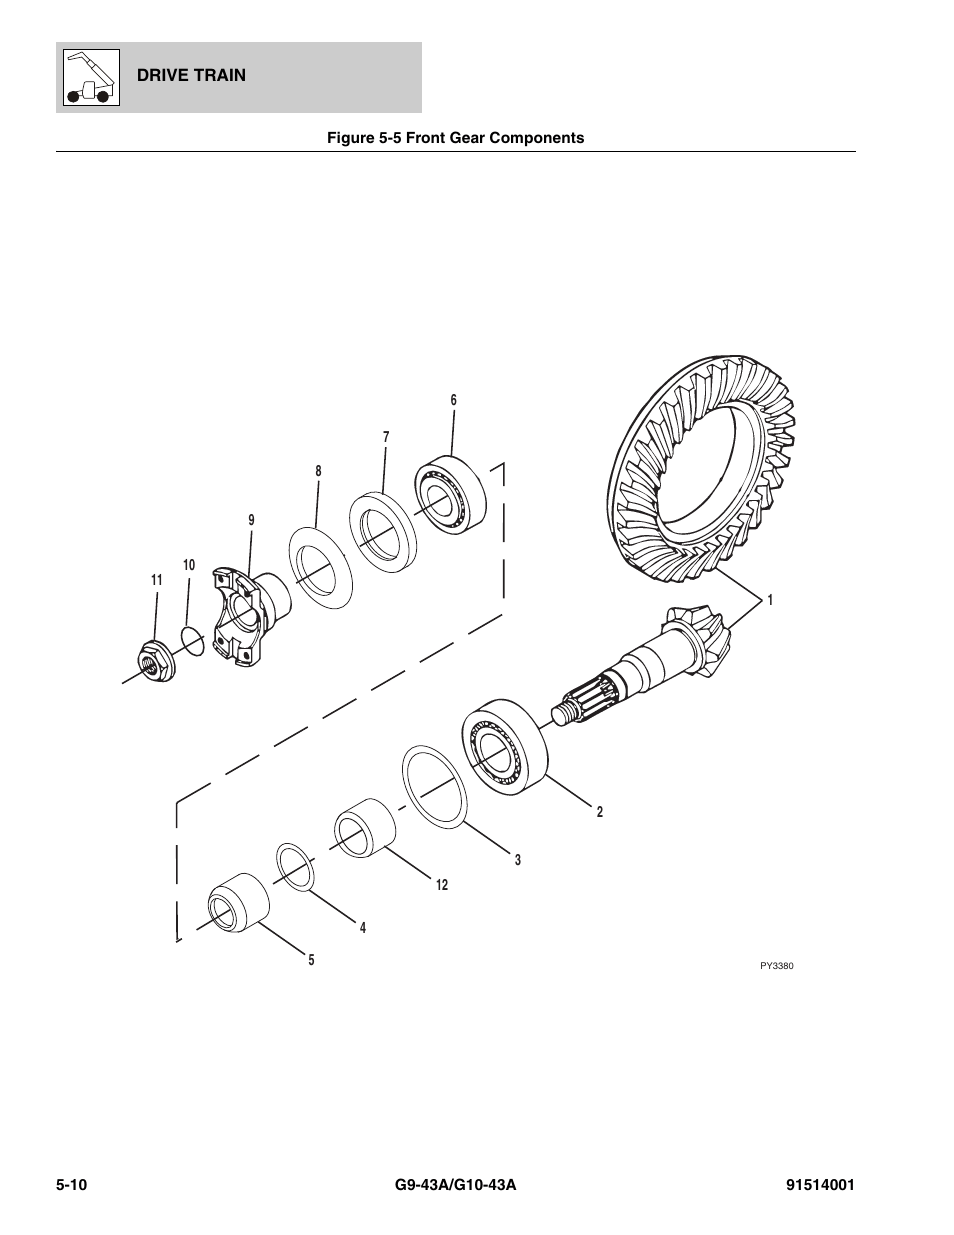 Figure 5-5 front gear components, Front gear components